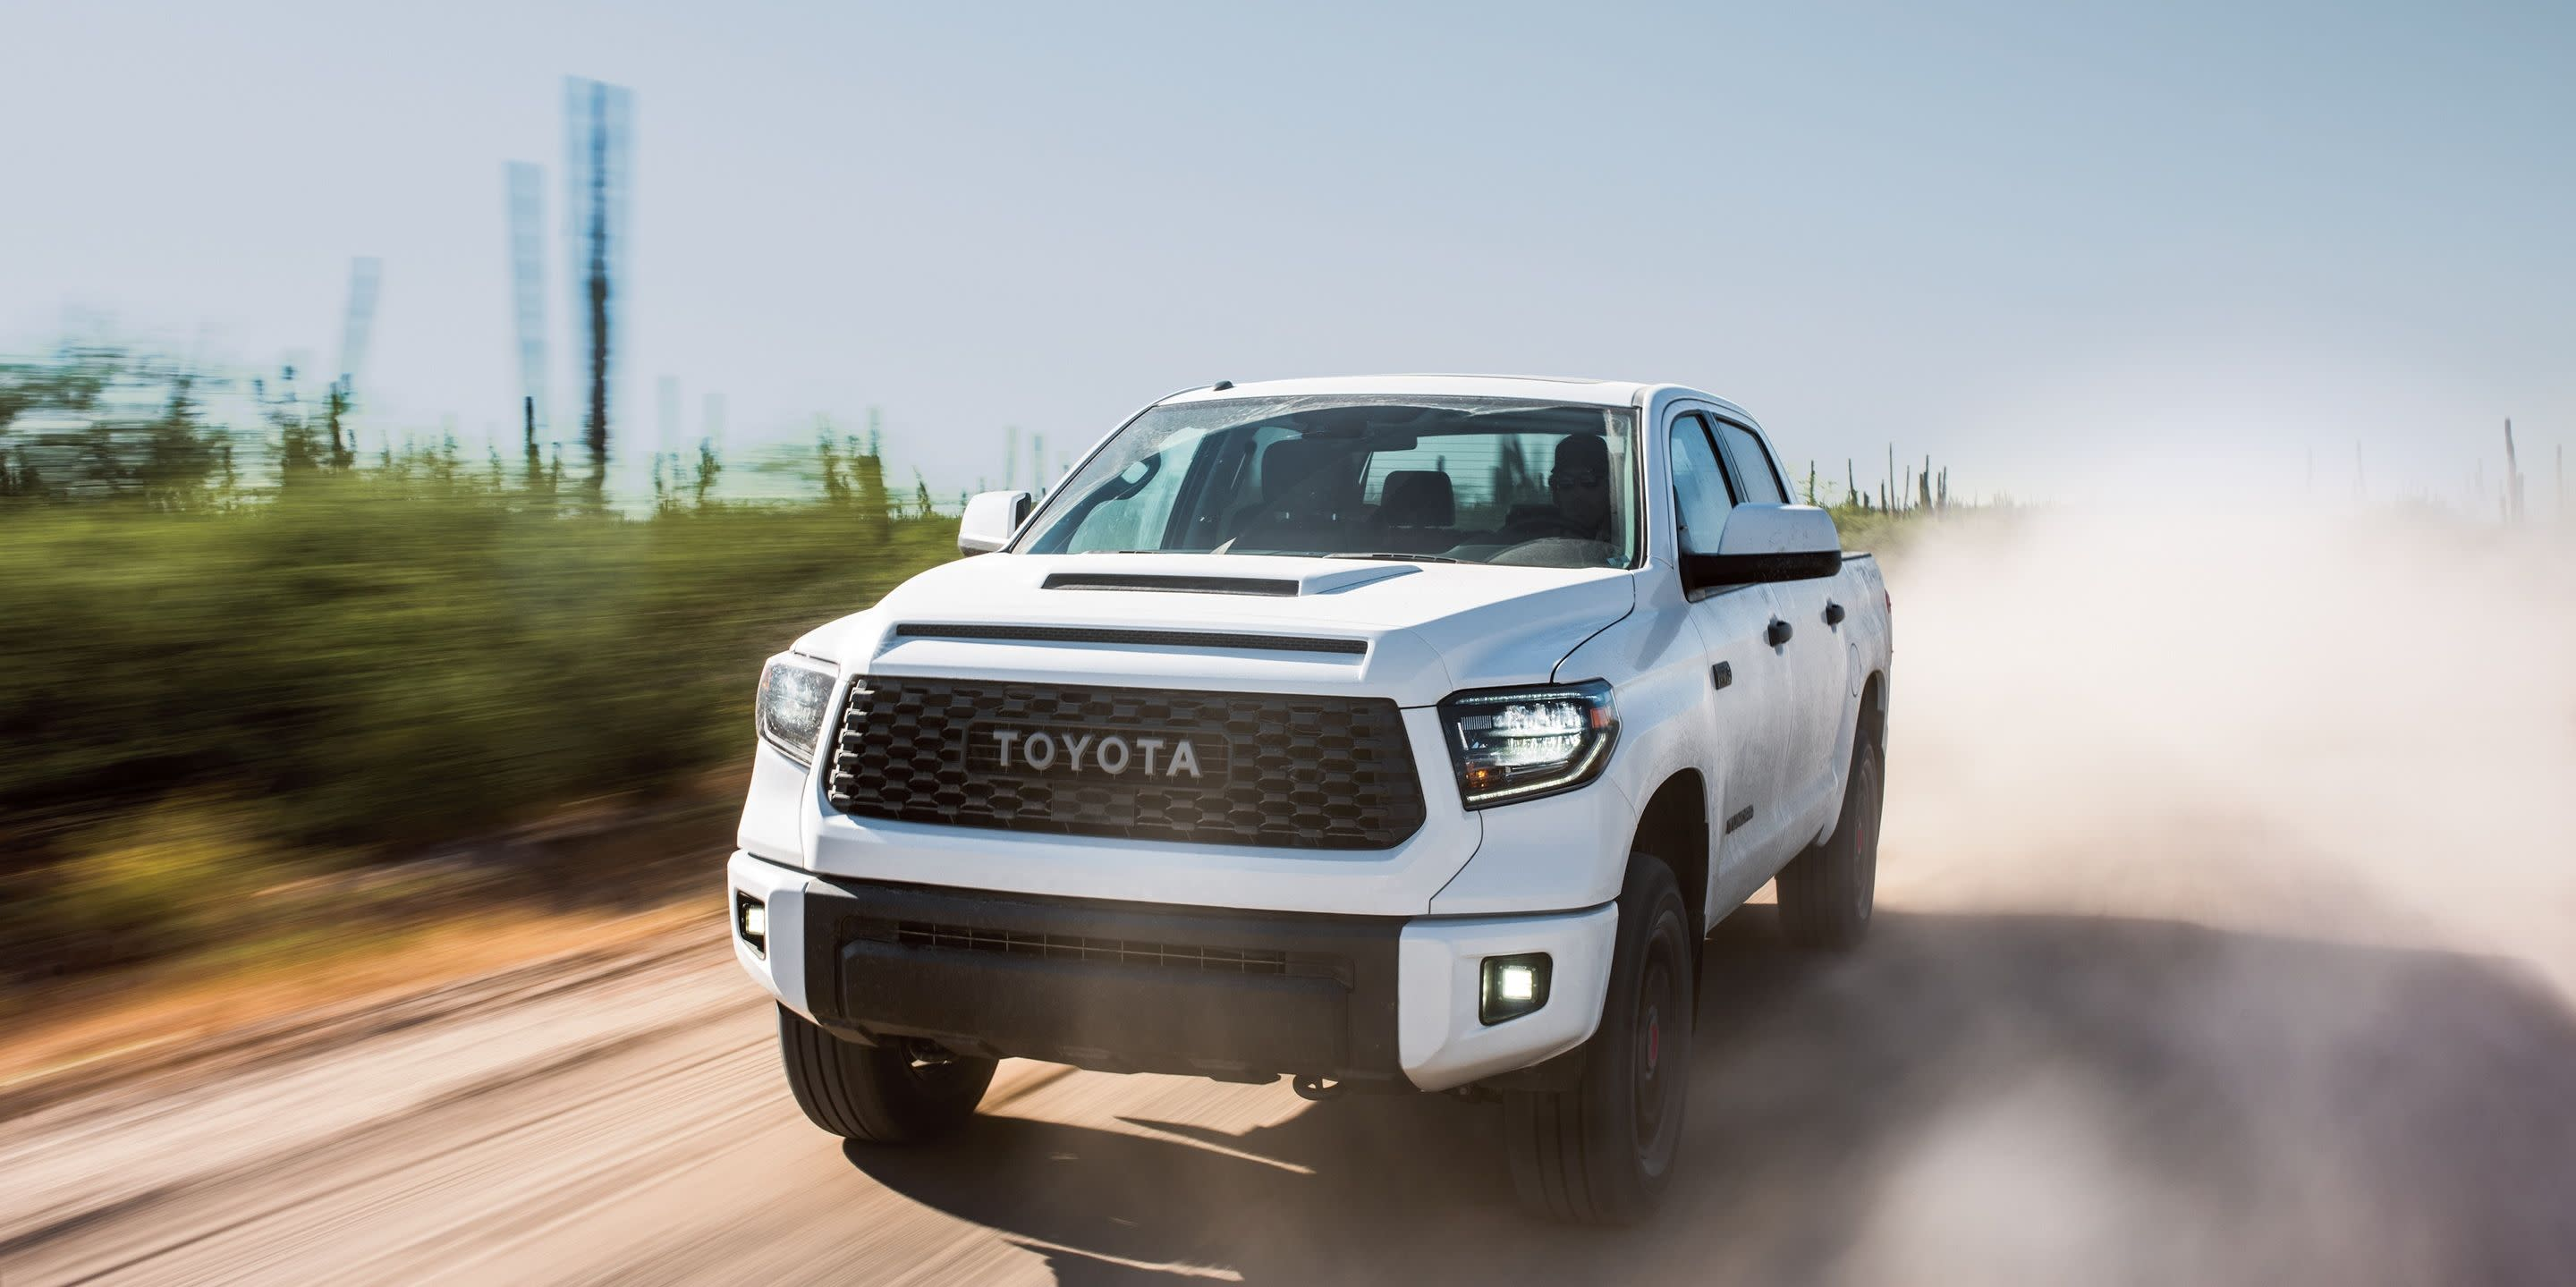 2019 Toyota Tundra vs 2019 Chevrolet Silverado 1500 in New Castle, DE